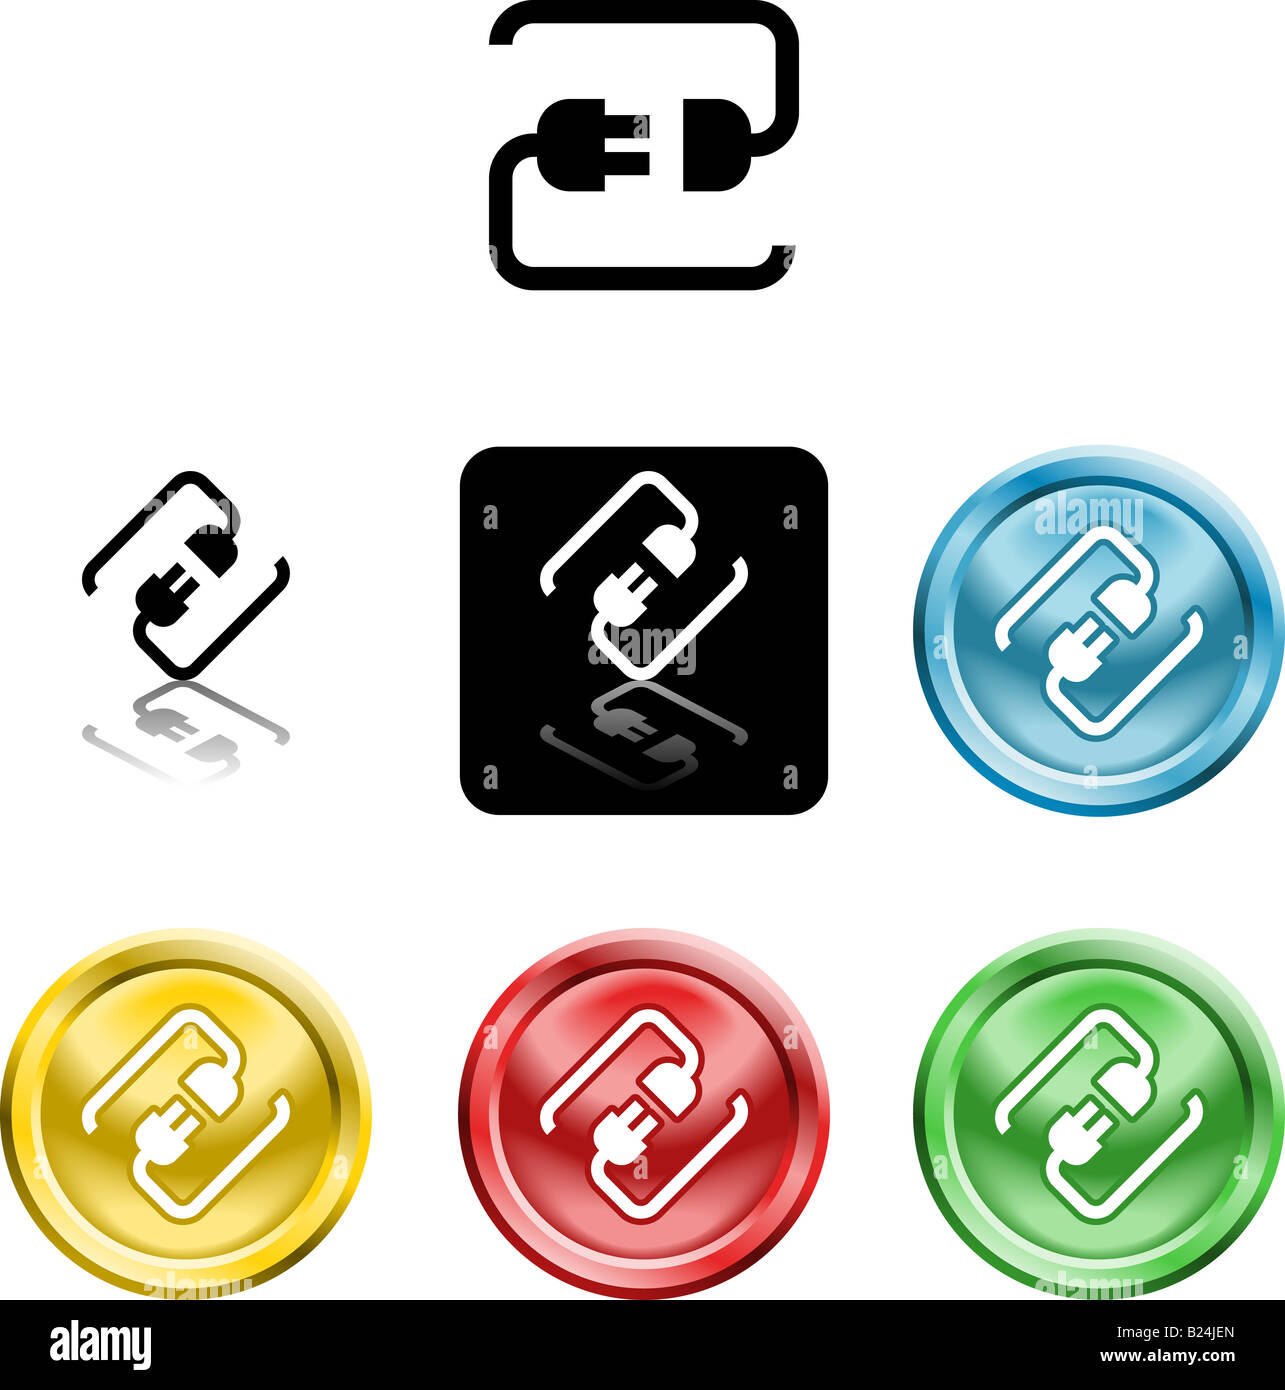 Several versions of an icon symbol of a stylised plug connecting - Stock Image